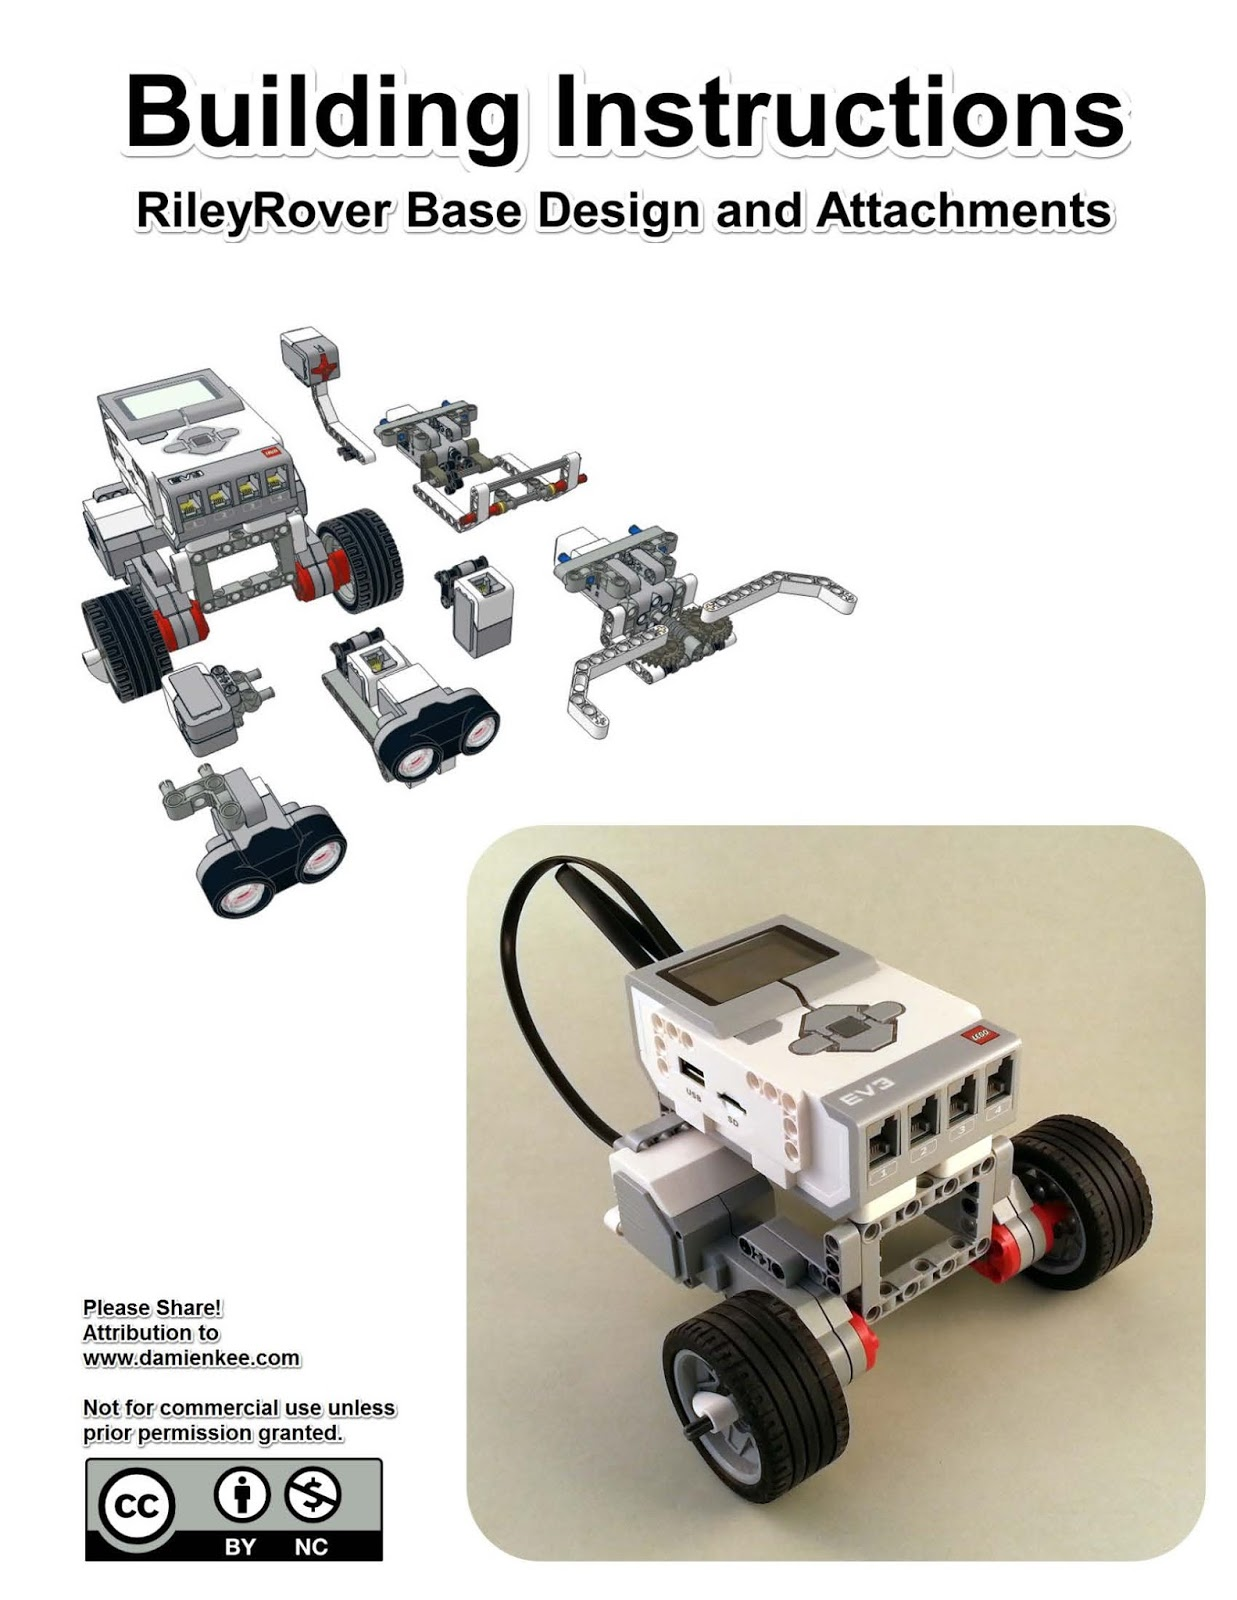 RoBoTiCS education centre: RileyRover - EV3 Classroom ...